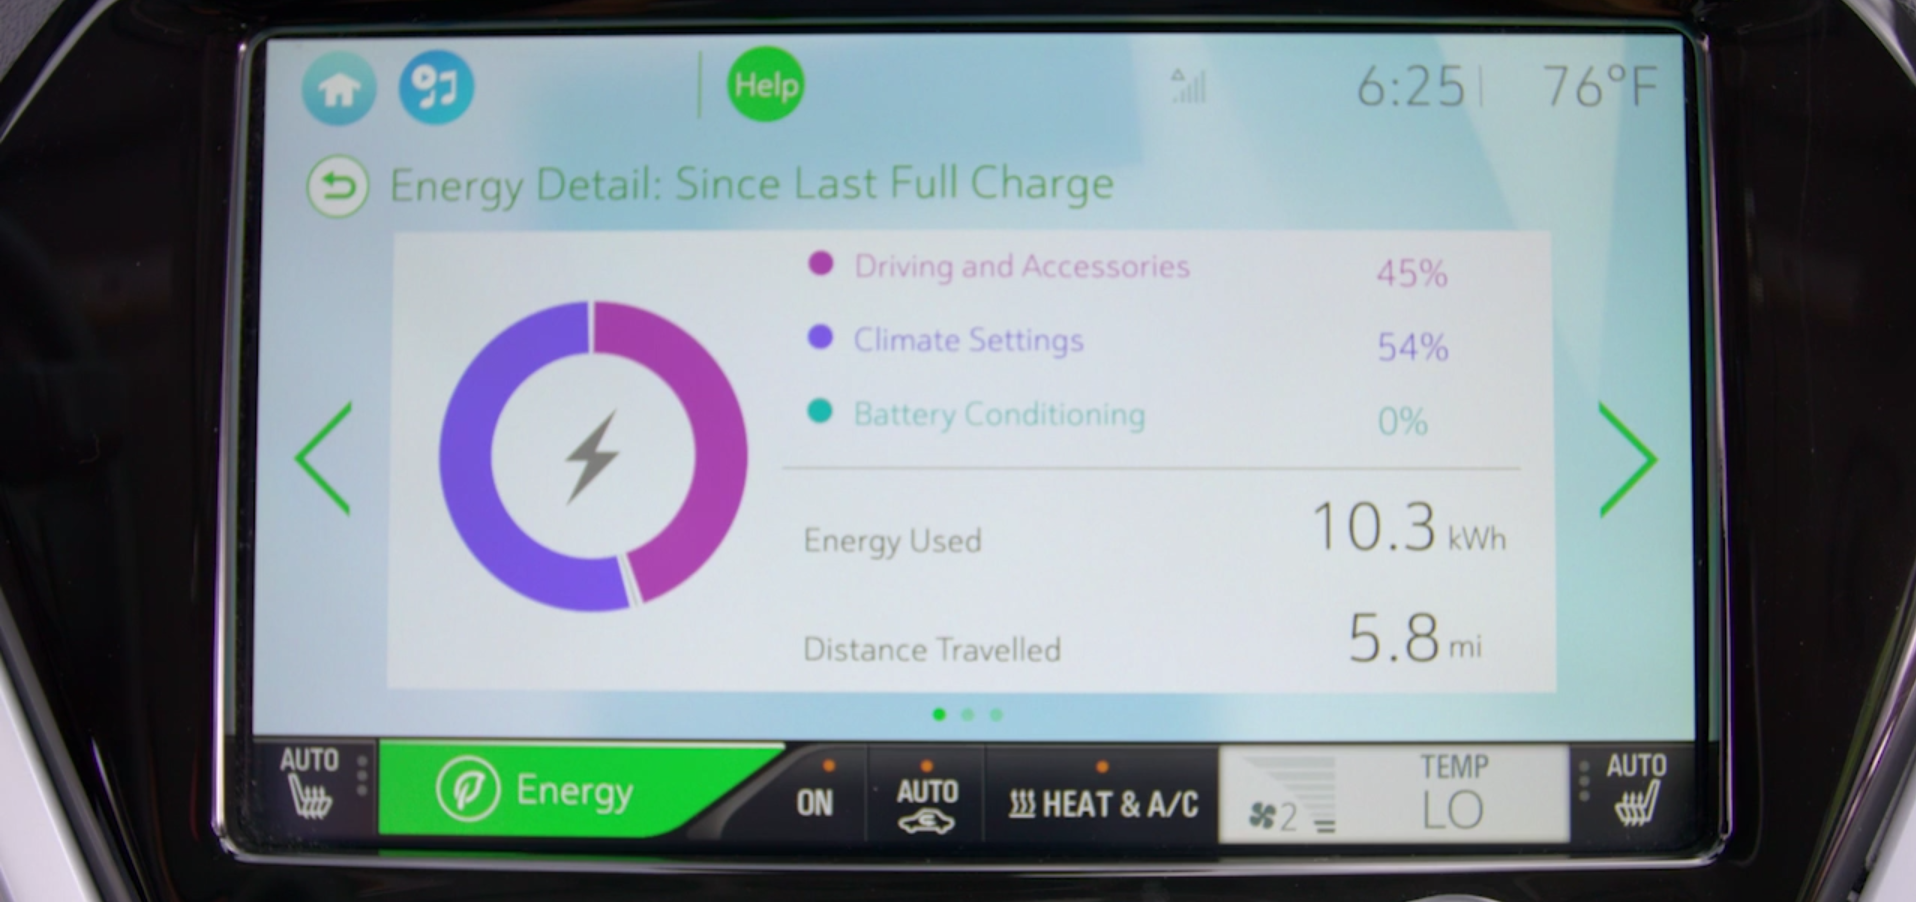 Chevy bolt EV energy screen